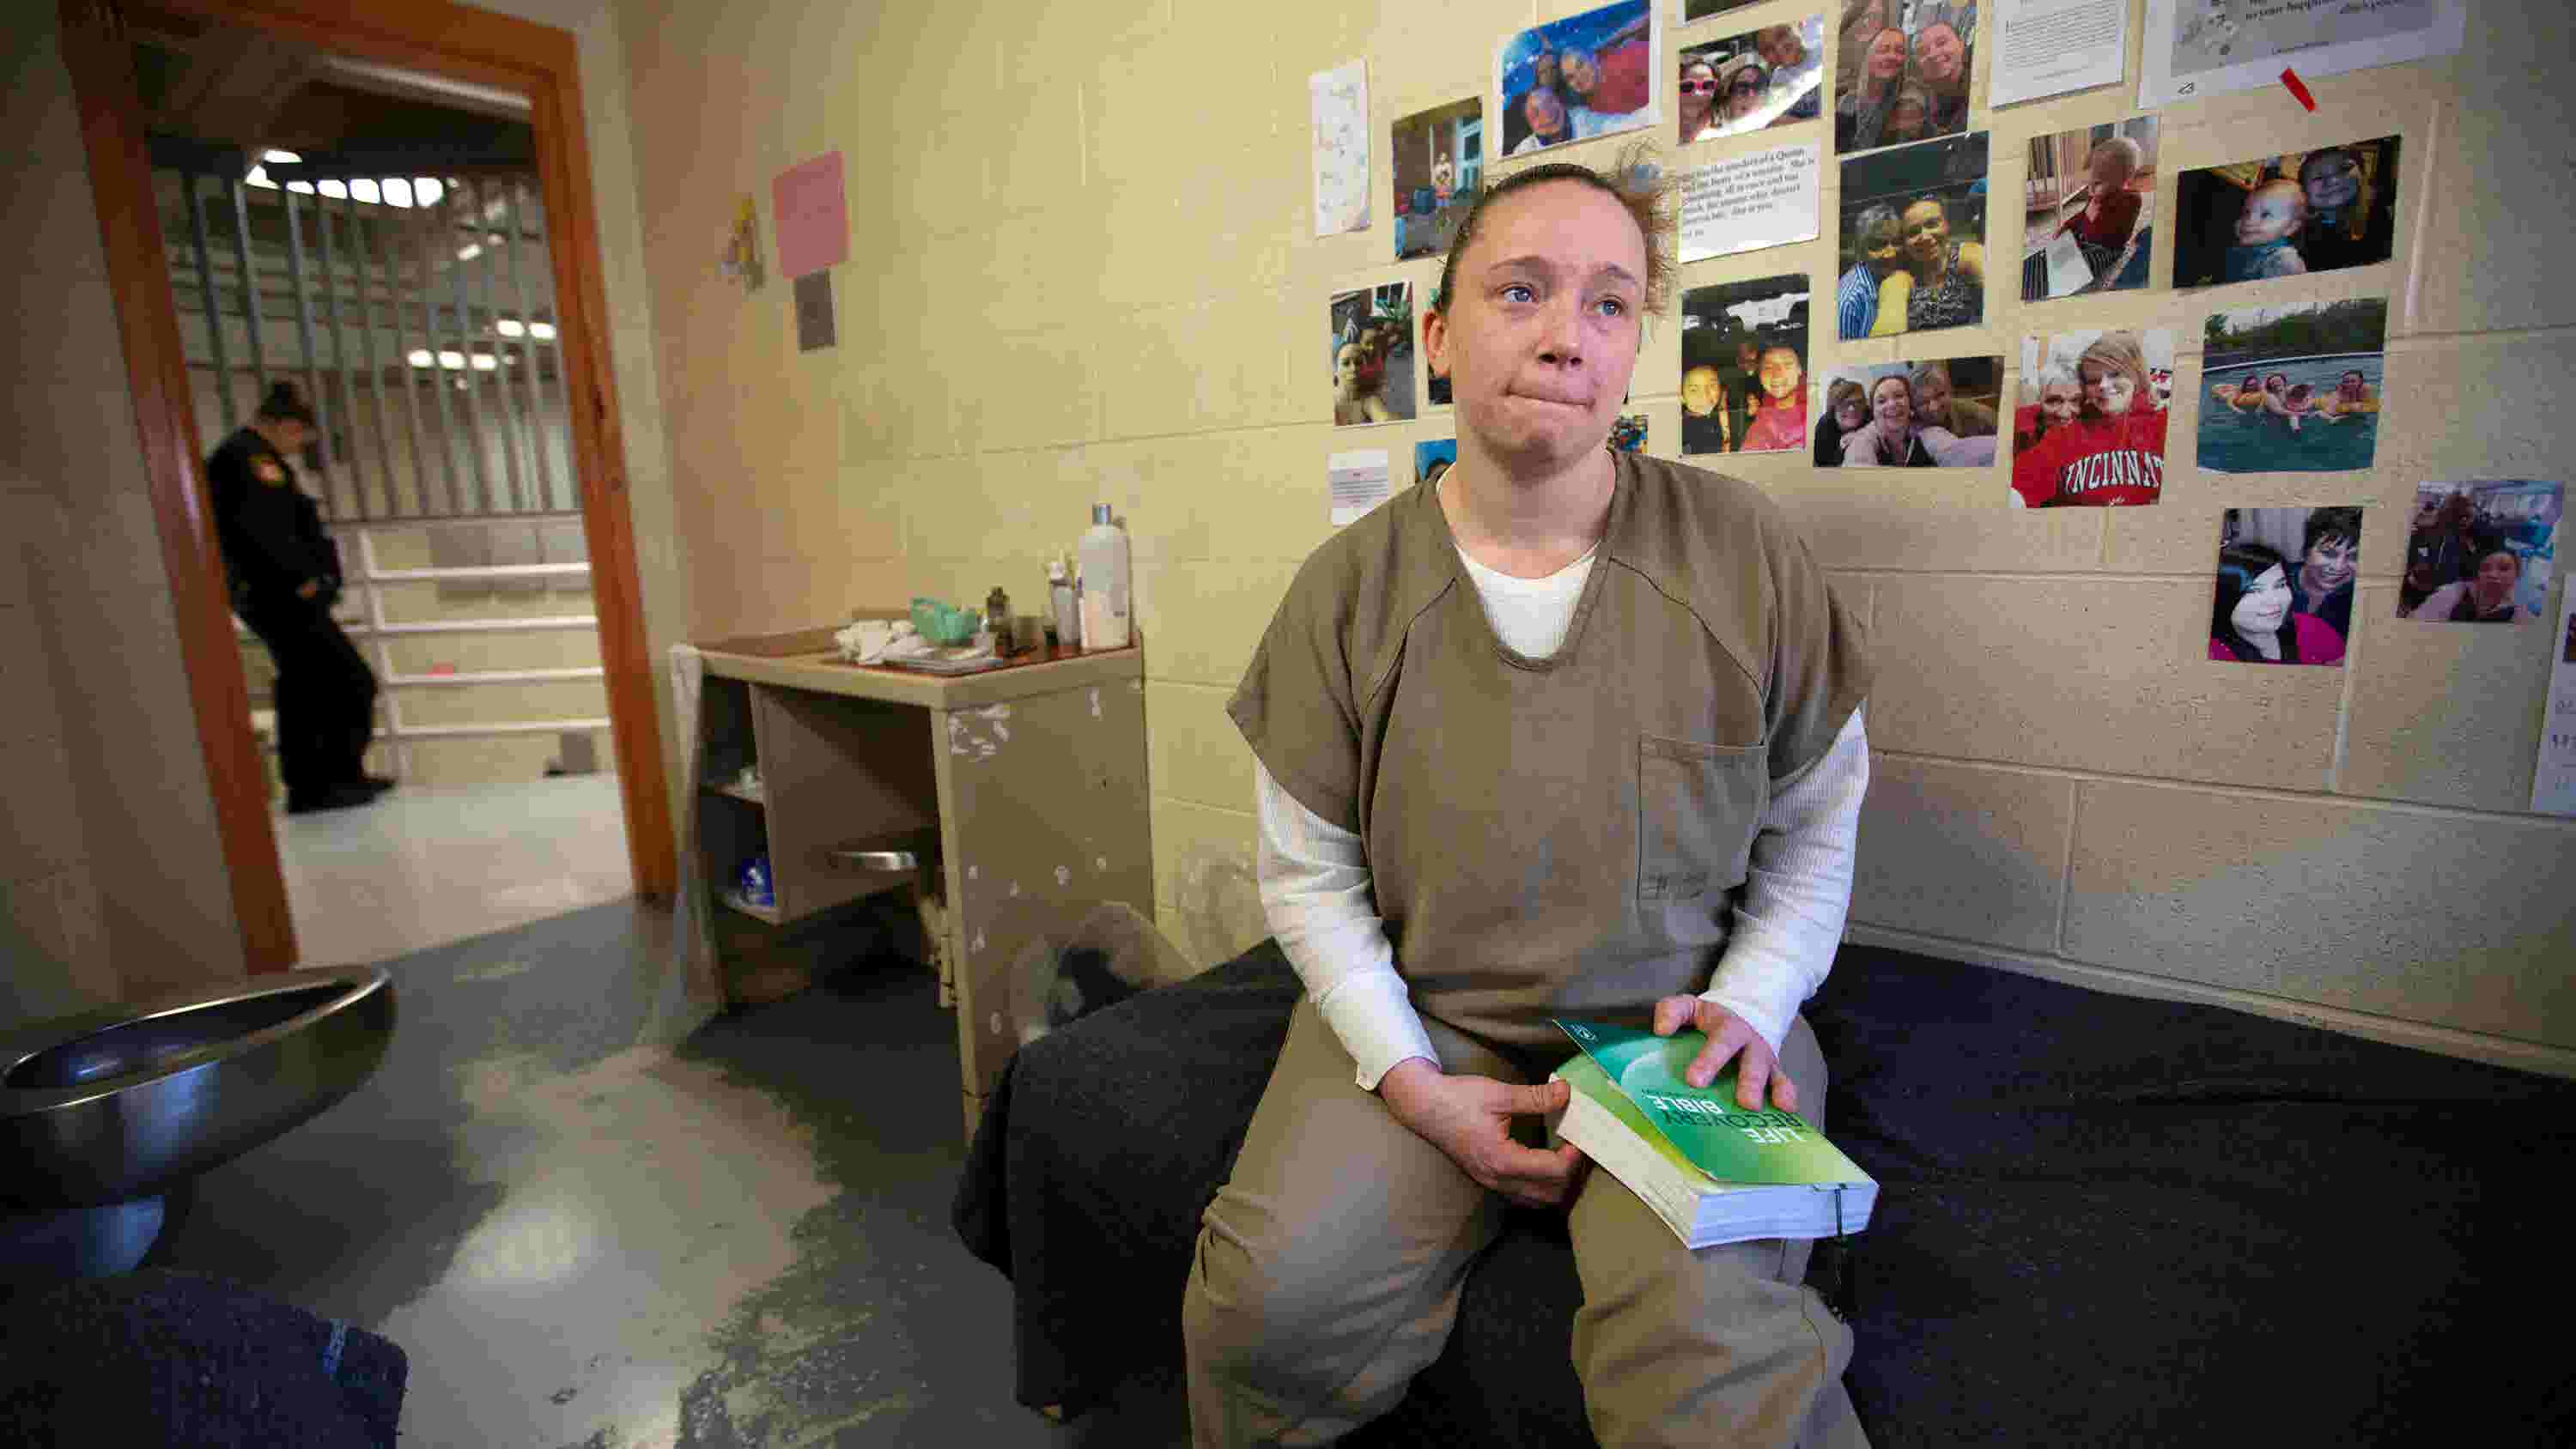 Treatment in jail to help fight addiction